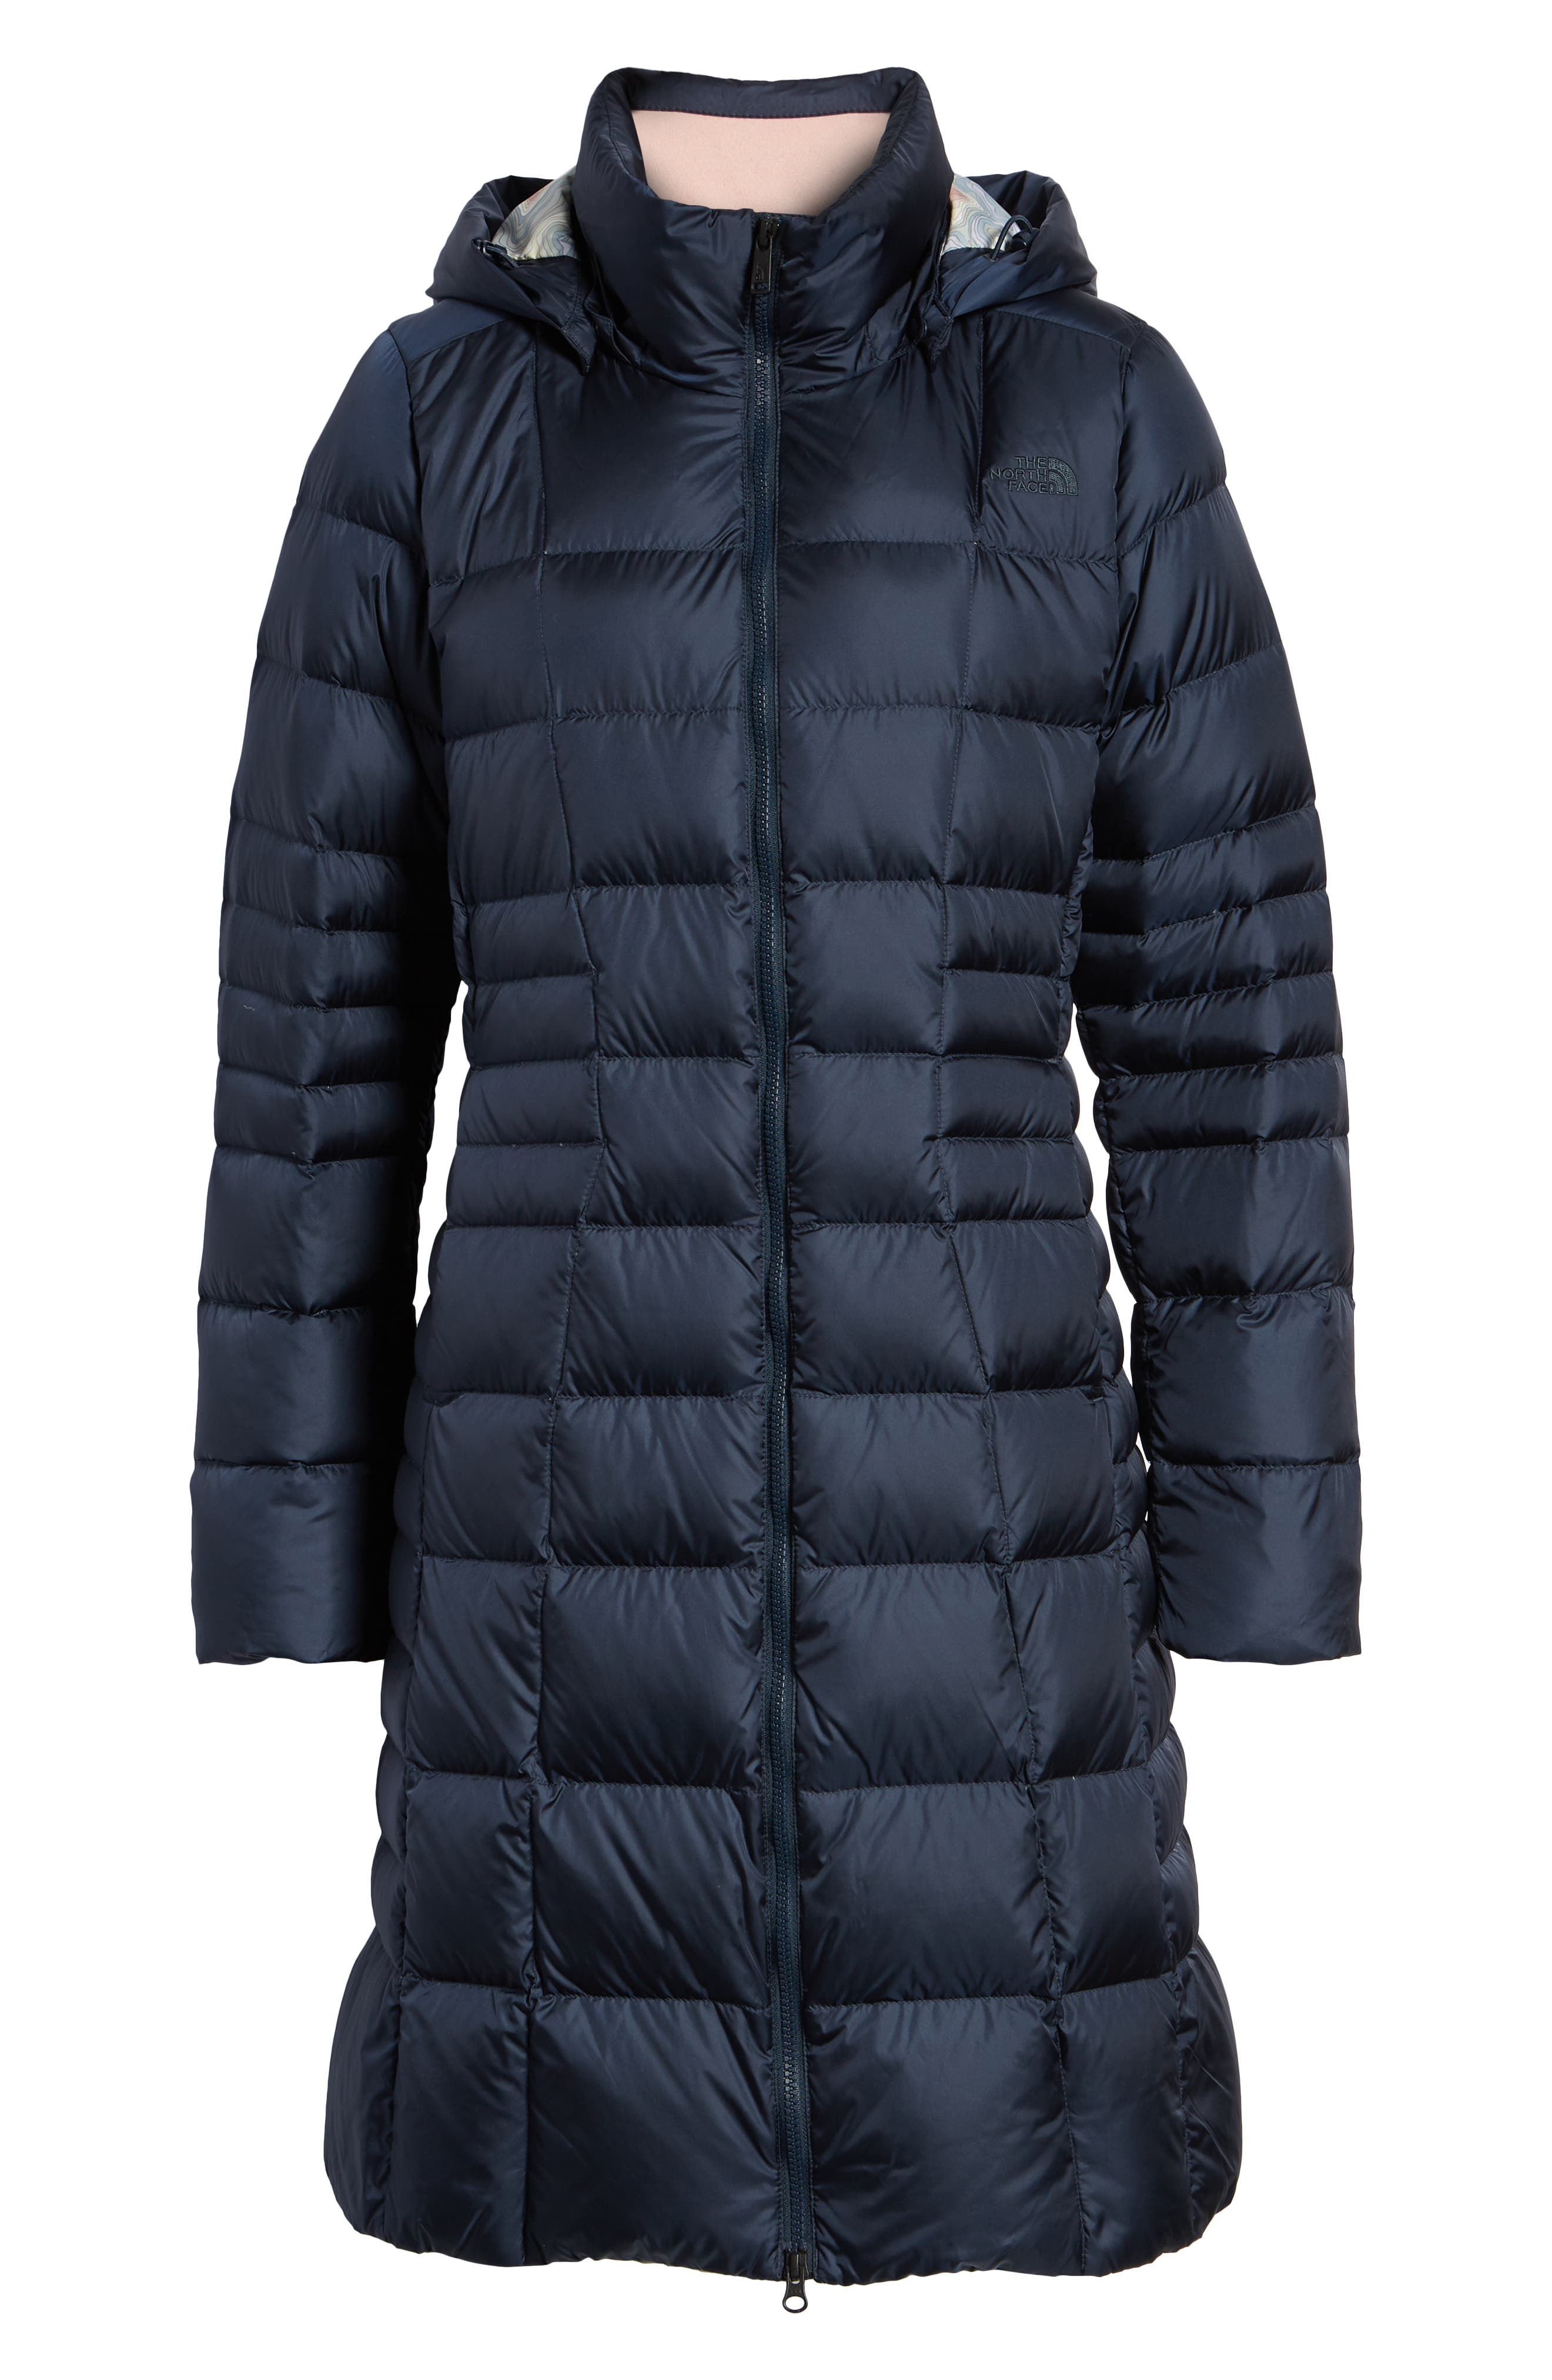 THE NORTH FACE, Metropolis II Hooded Water Resistant Down Parka, Alternate thumbnail 6, color, URBAN NAVY/ MULTI TOPO PRINT